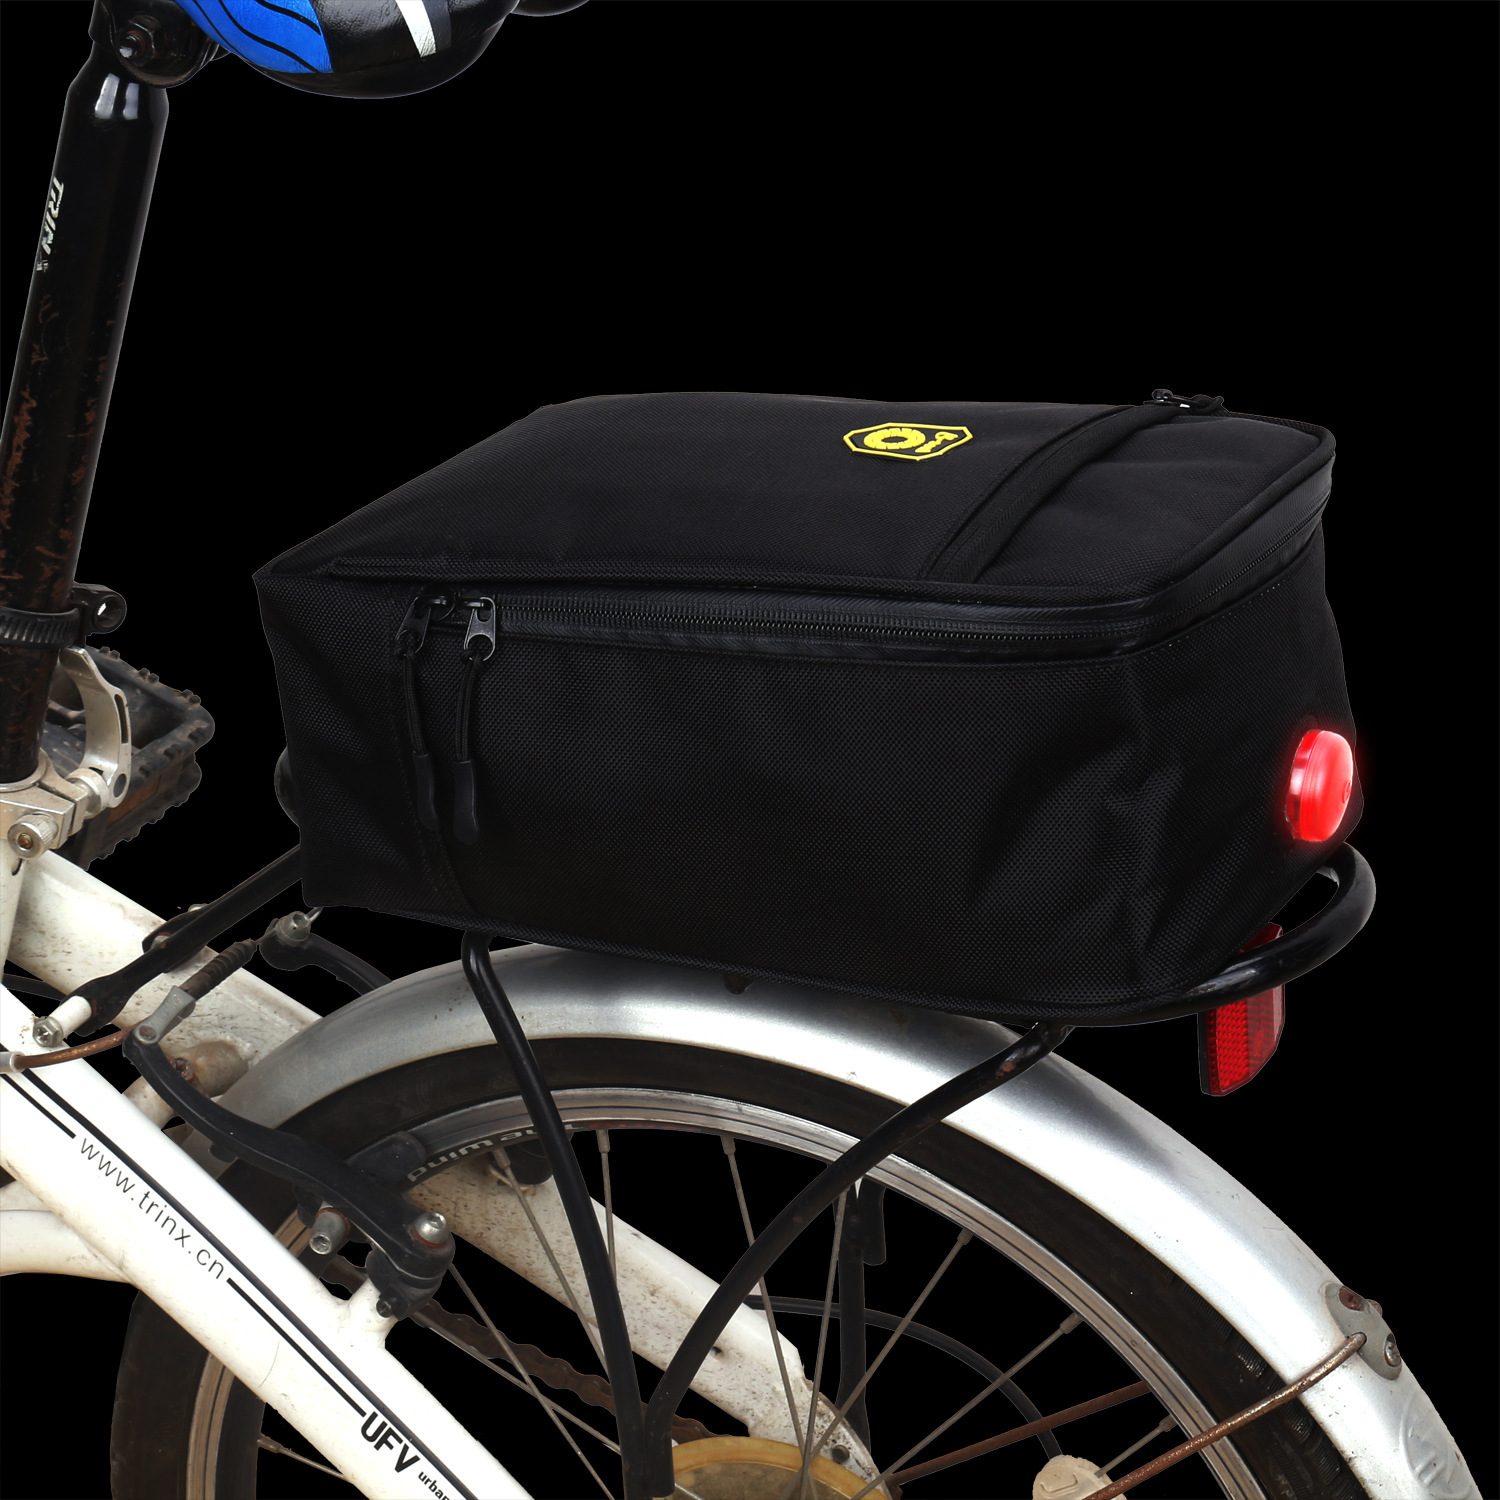 BIKIGHT Polyester Waterproof Bicycle Cycling Bike Backpack Seat Bag Foldable Motorcycle Battery Bag with Tillight